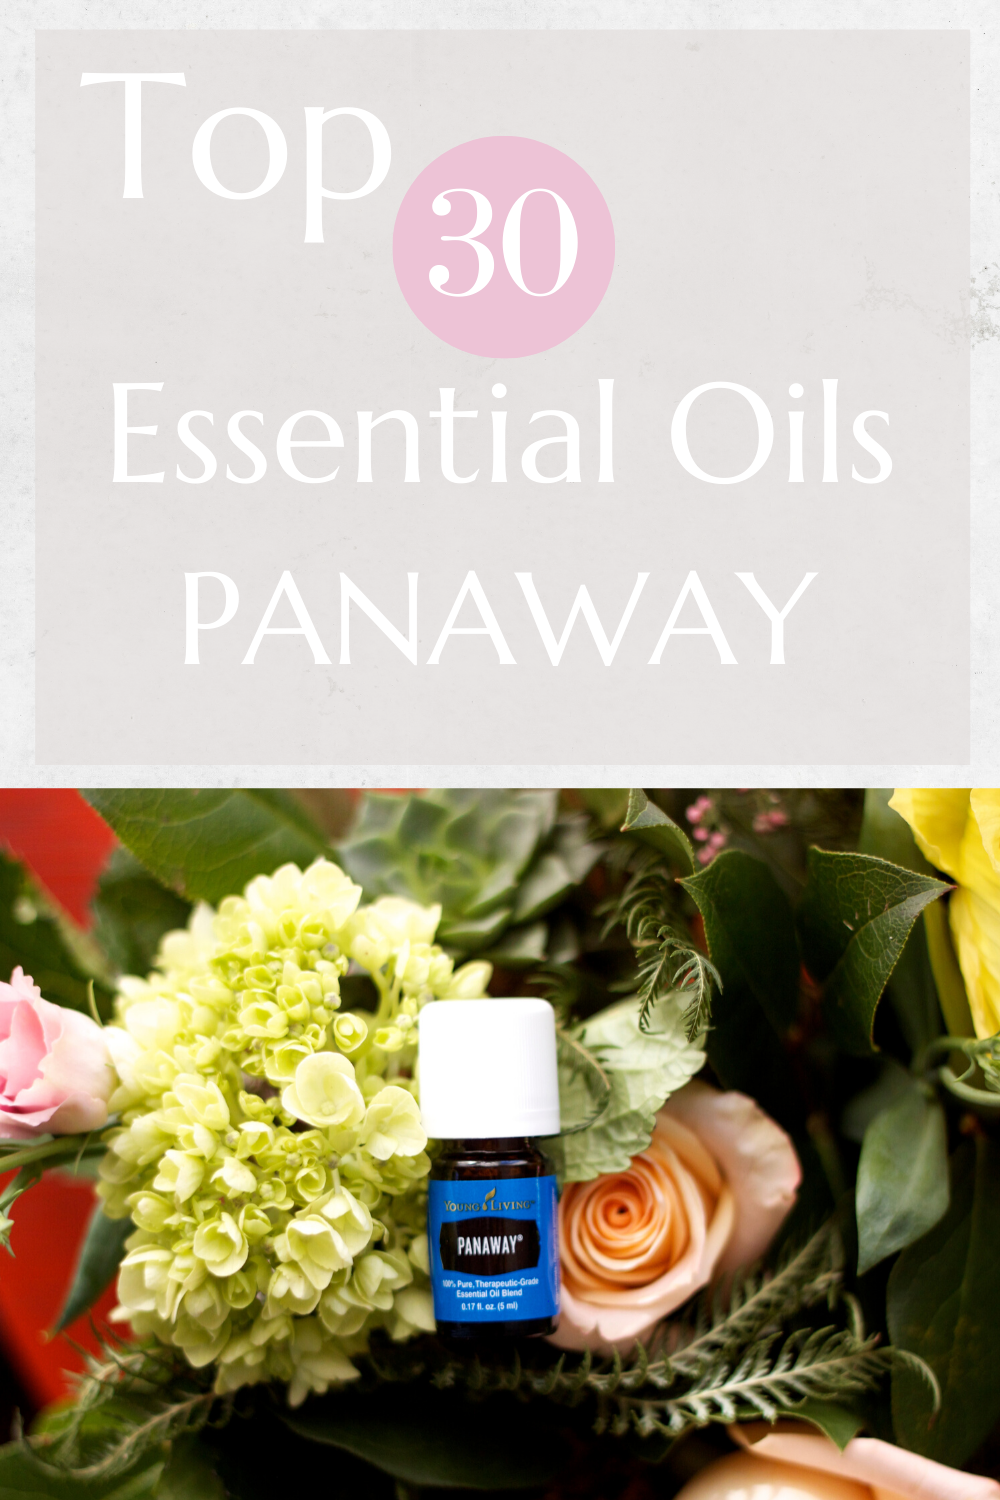 Top 30 Essential Oils Panaway